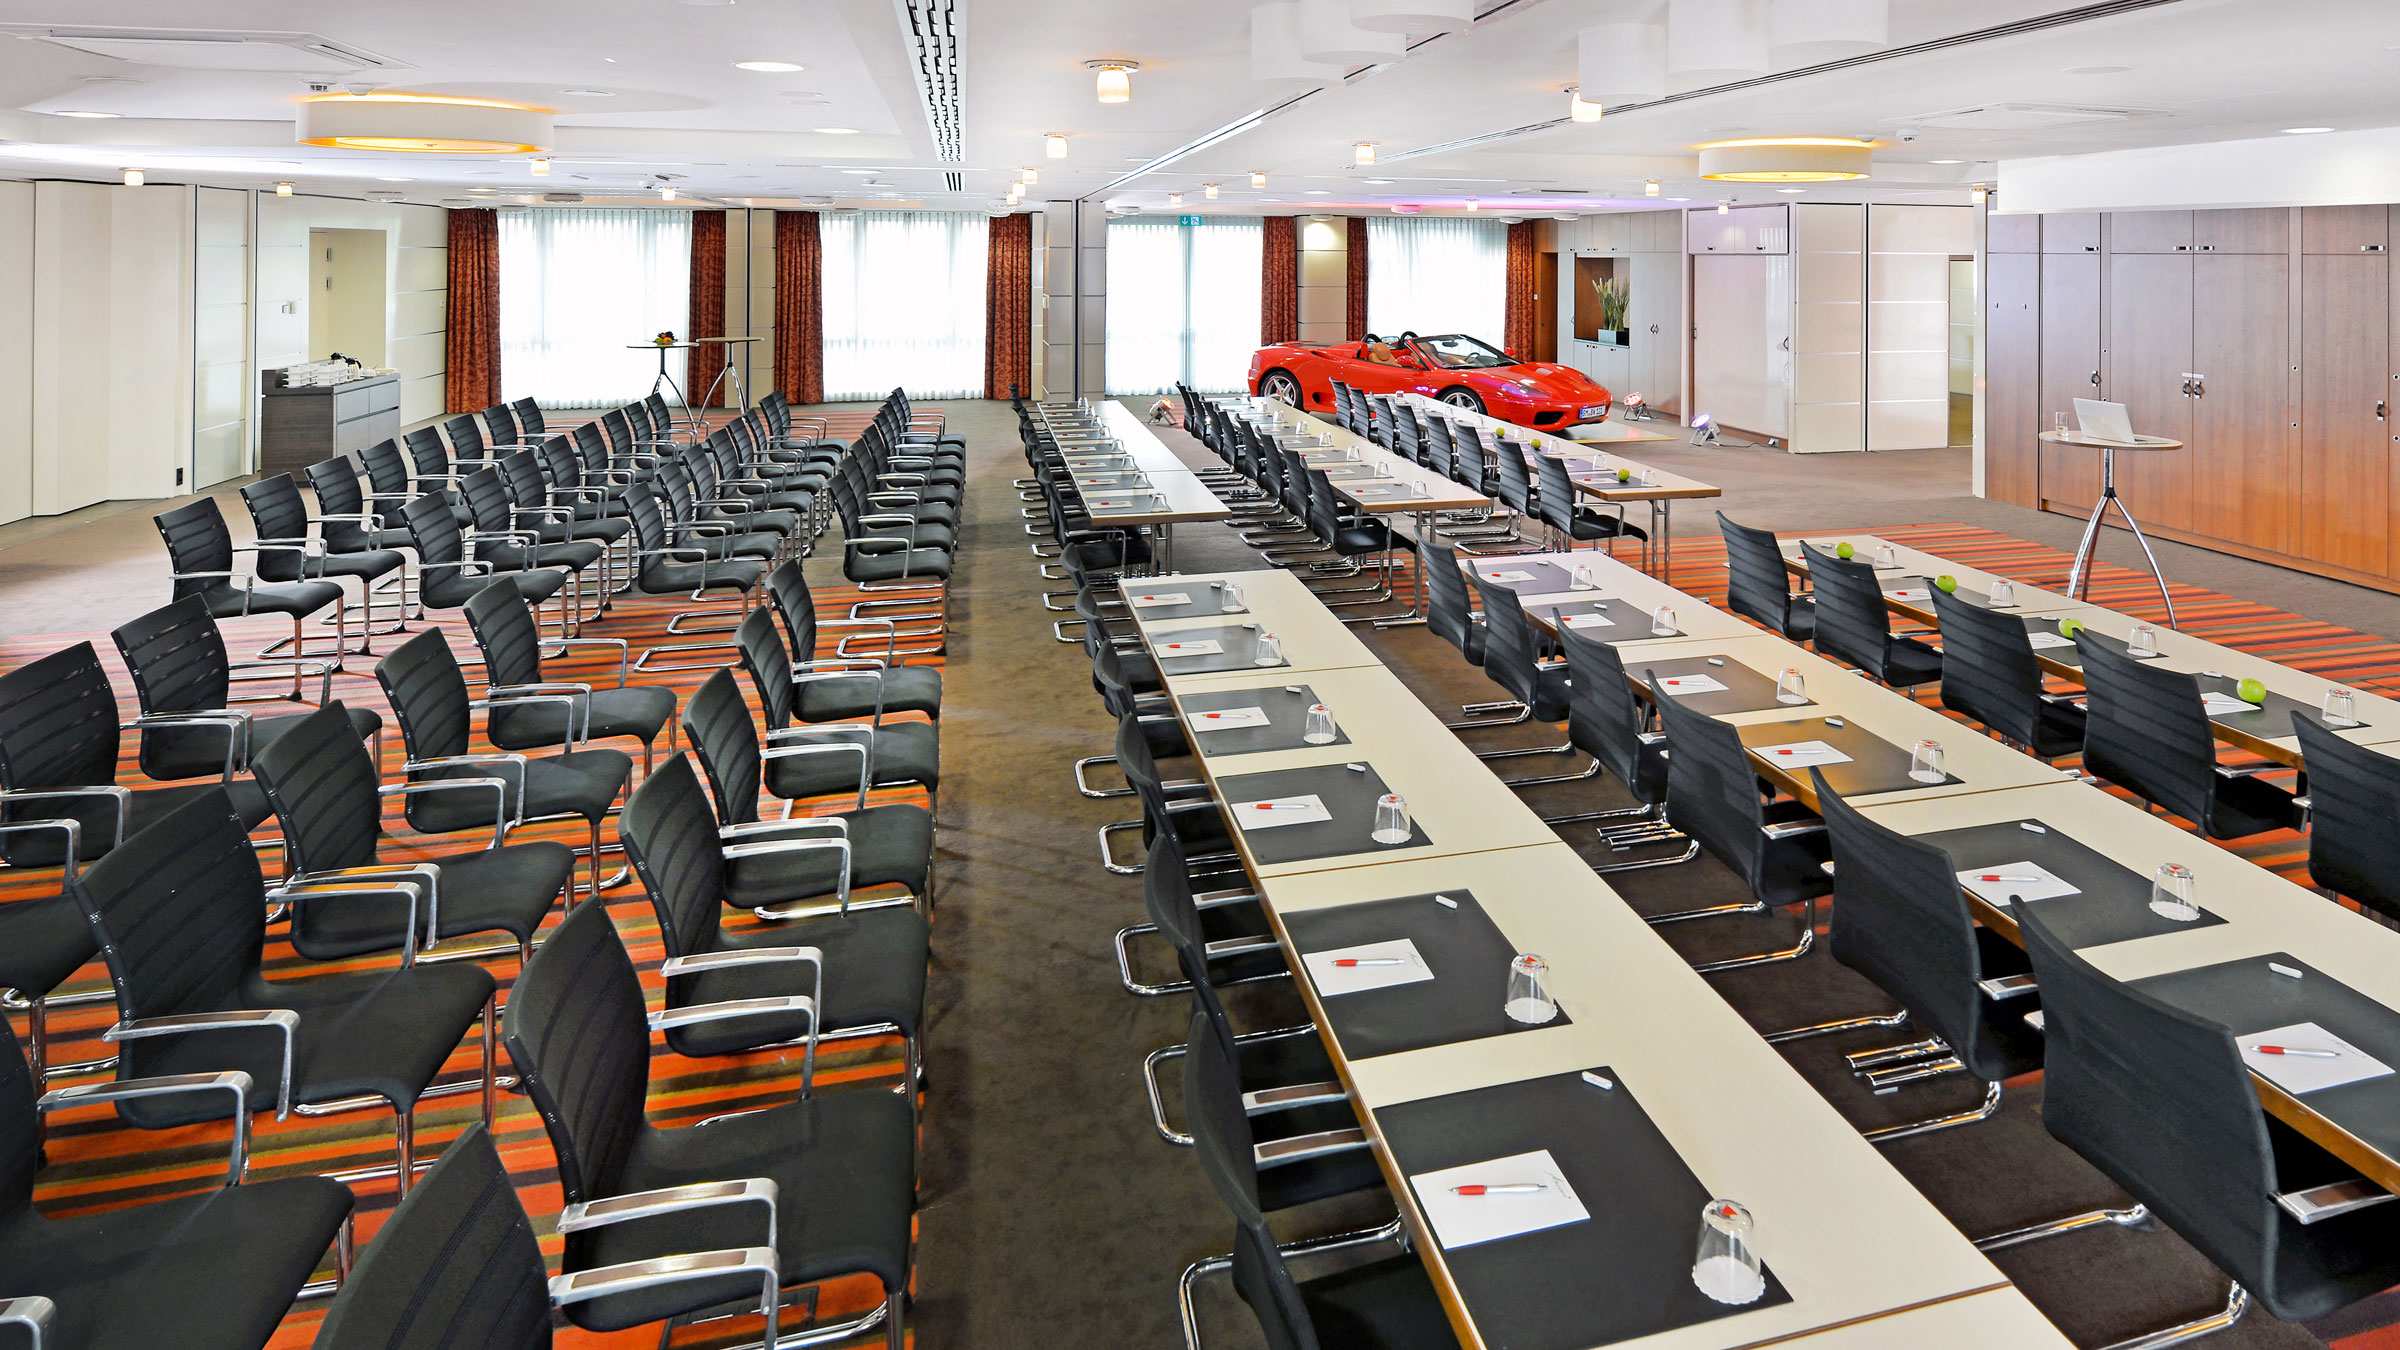 Eight function rooms configurable to meet individual requirements for up to 250 people.